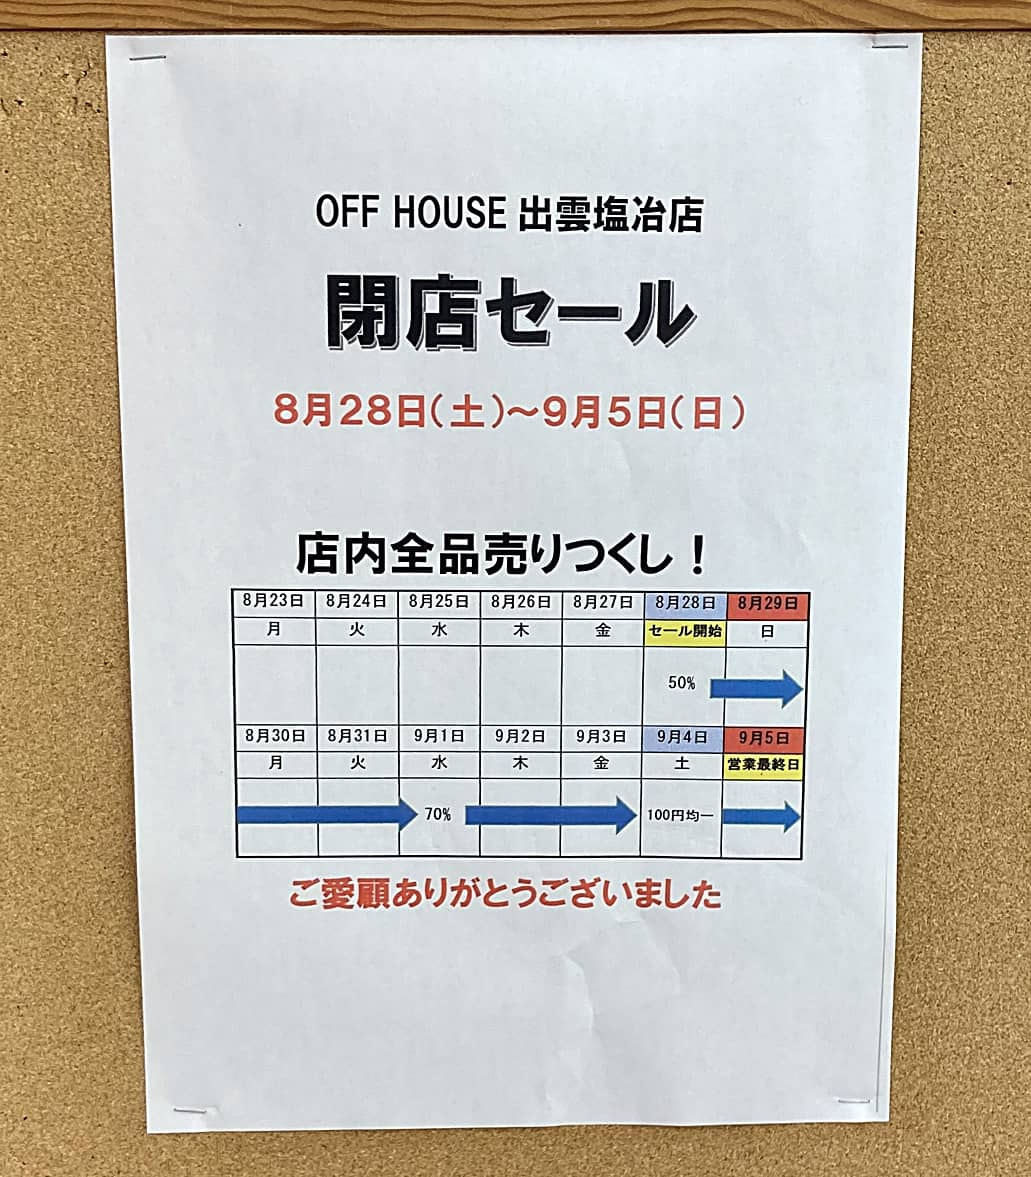 OFF HOUSE 出雲塩冶店 閉店セール